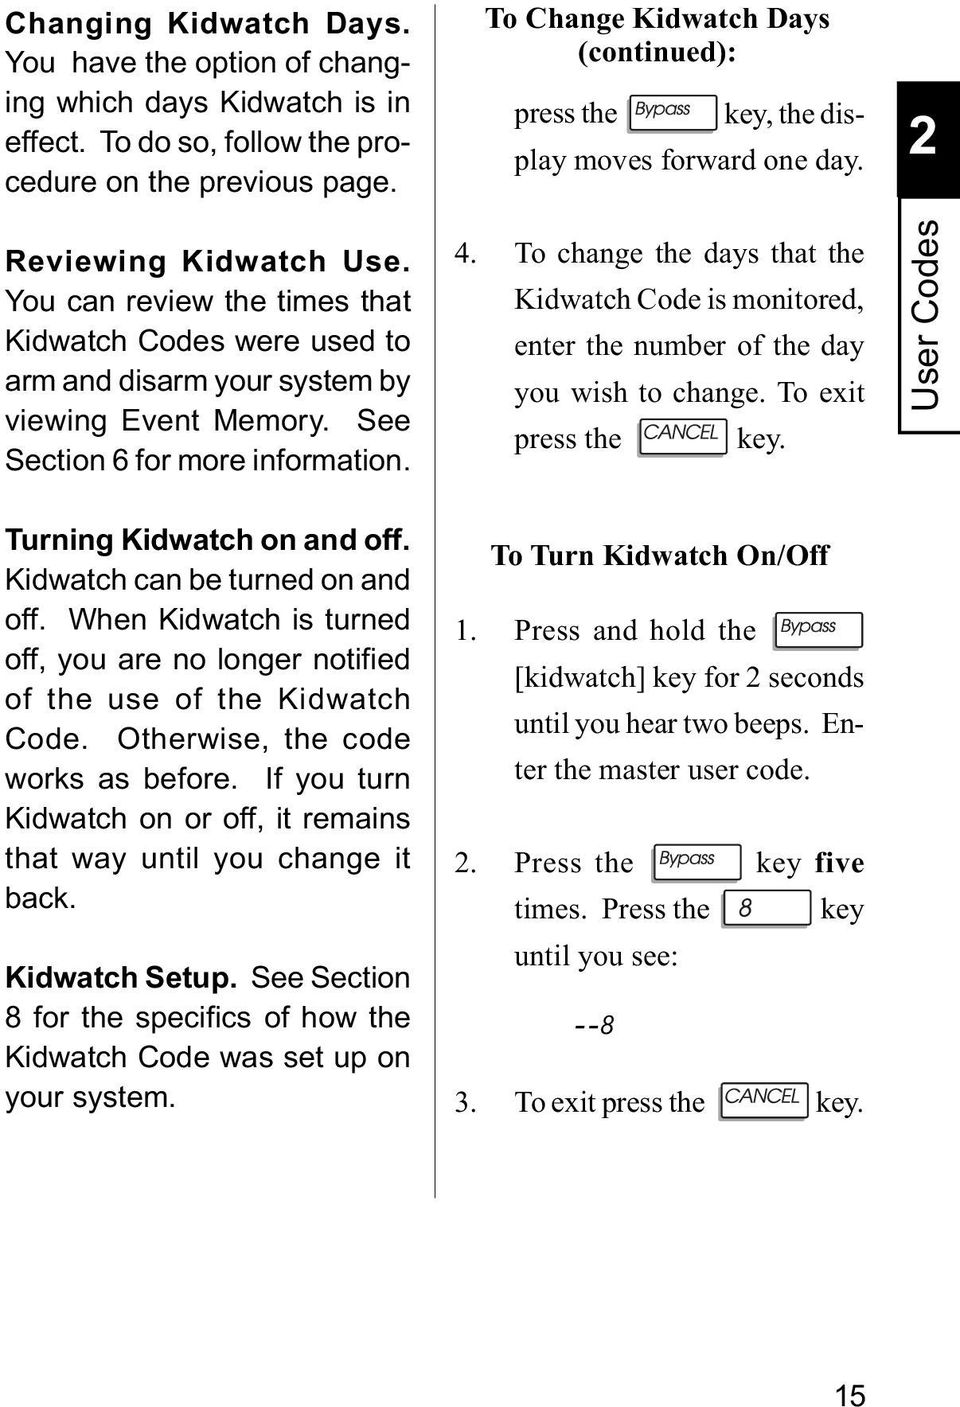 You can review the times that Kidwatch Codes were used to arm and disarm your system by viewing Event Memory. See Section 6 for more information. 4.